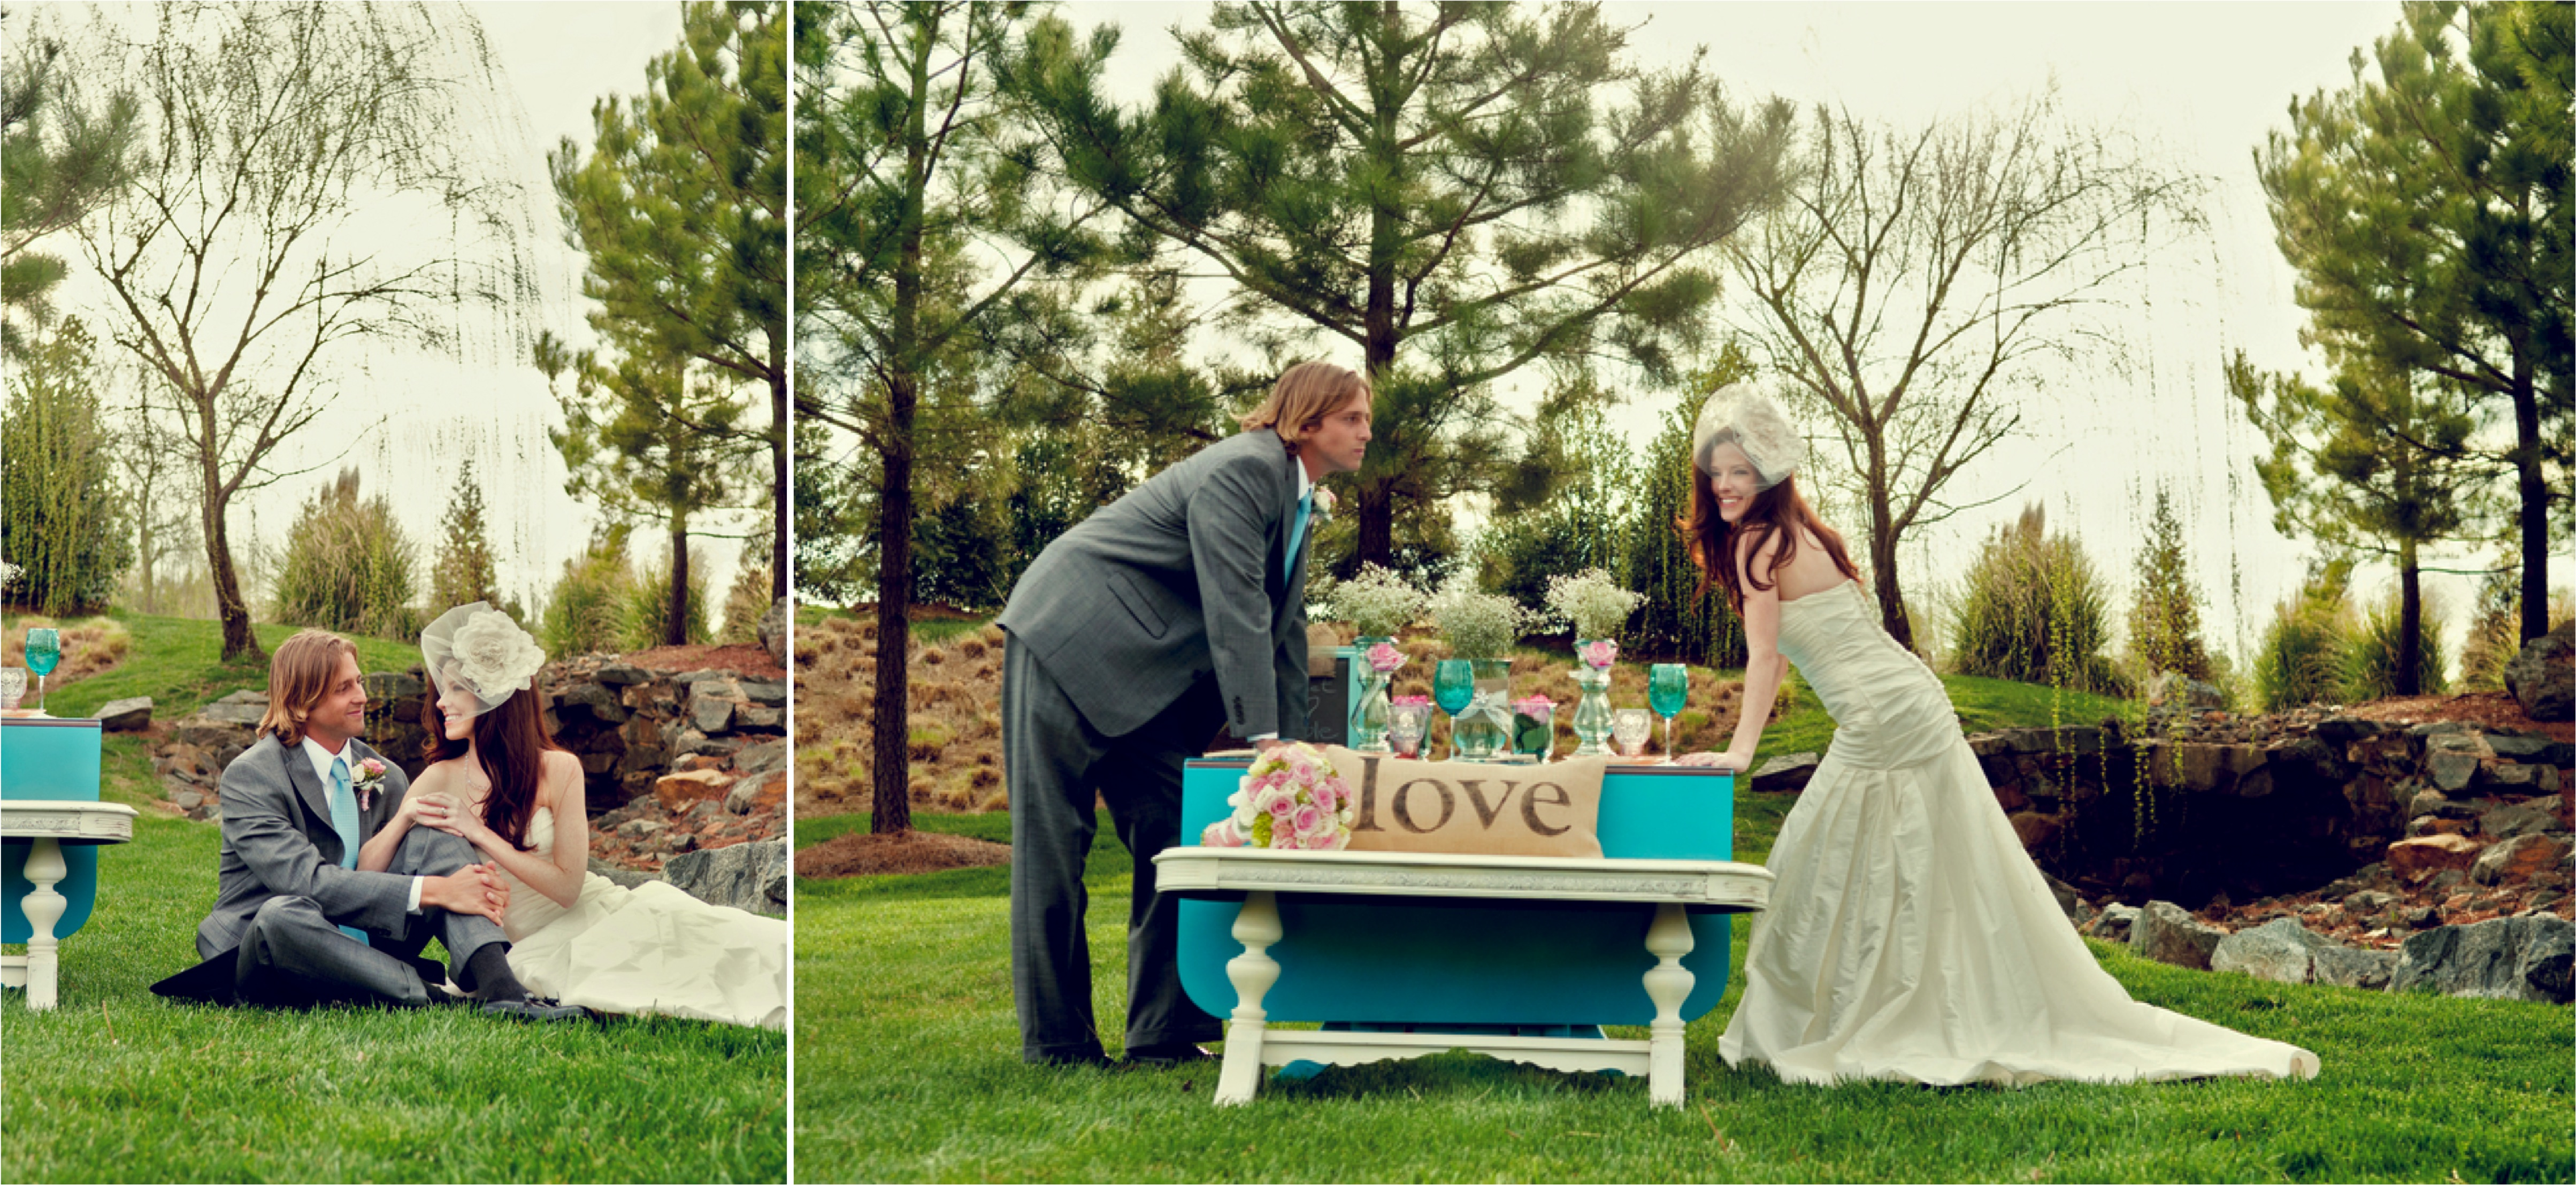 Pink & Turquoise Shabby Chic Wedding Inspiration via TheELD.com